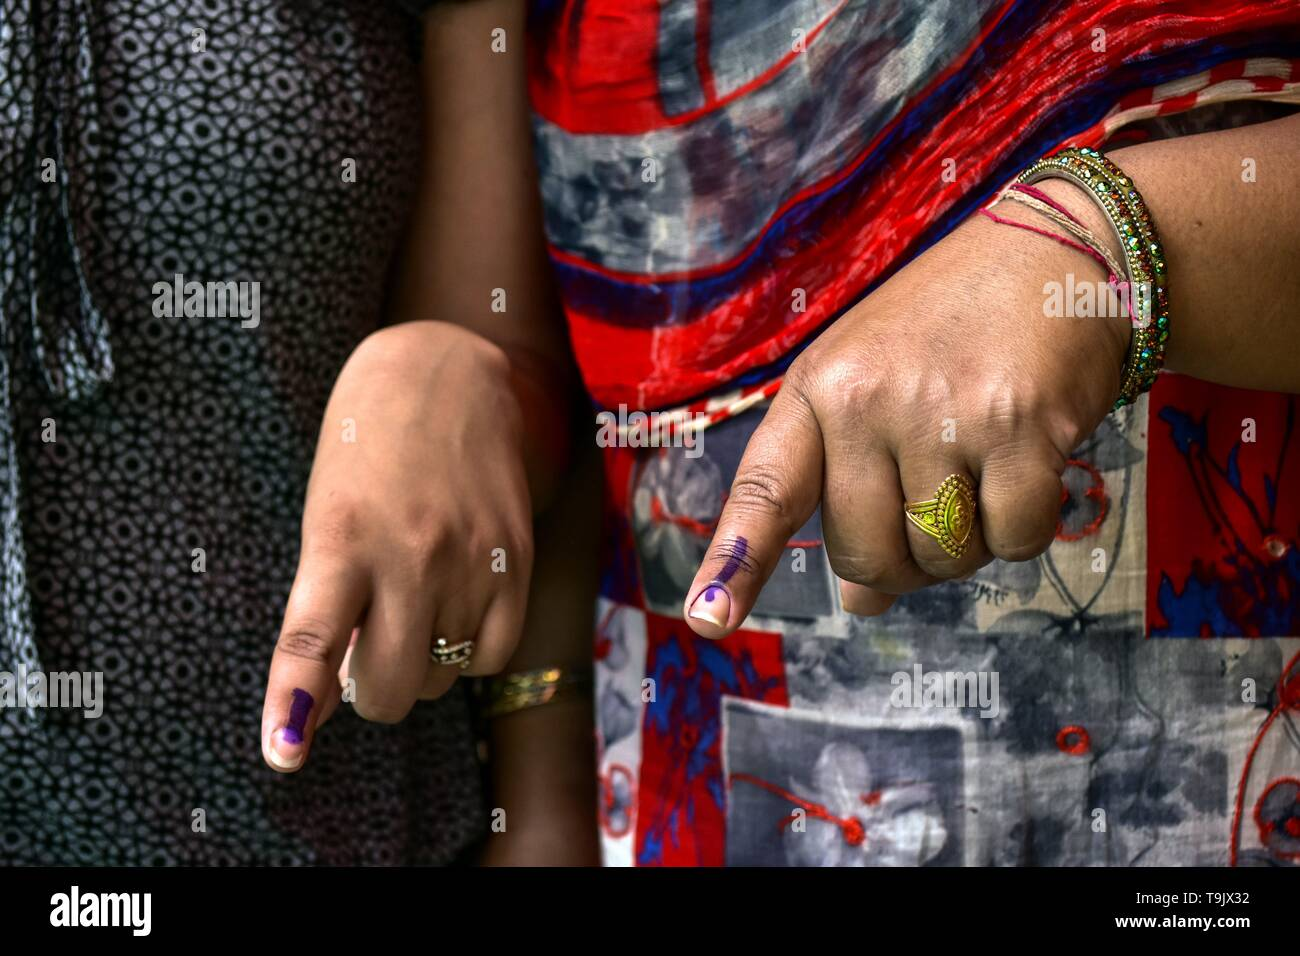 Indian voters seen showing their inked fingers after casting their vote at a polling station during the final phase of India's general election in Patiala district of Punjab. Voting has begun for the final phase of Lok Sabha elections in Punjab, Bihar, West Bengal, Madhya Pradesh, Uttar Pradesh, Himachal Pradesh, Jharkhand and Chandigarh. Over 10.01 lakh voters will decide the fate of 918 candidates. The counting of votes will take place on May 23, officials said. - Stock Image